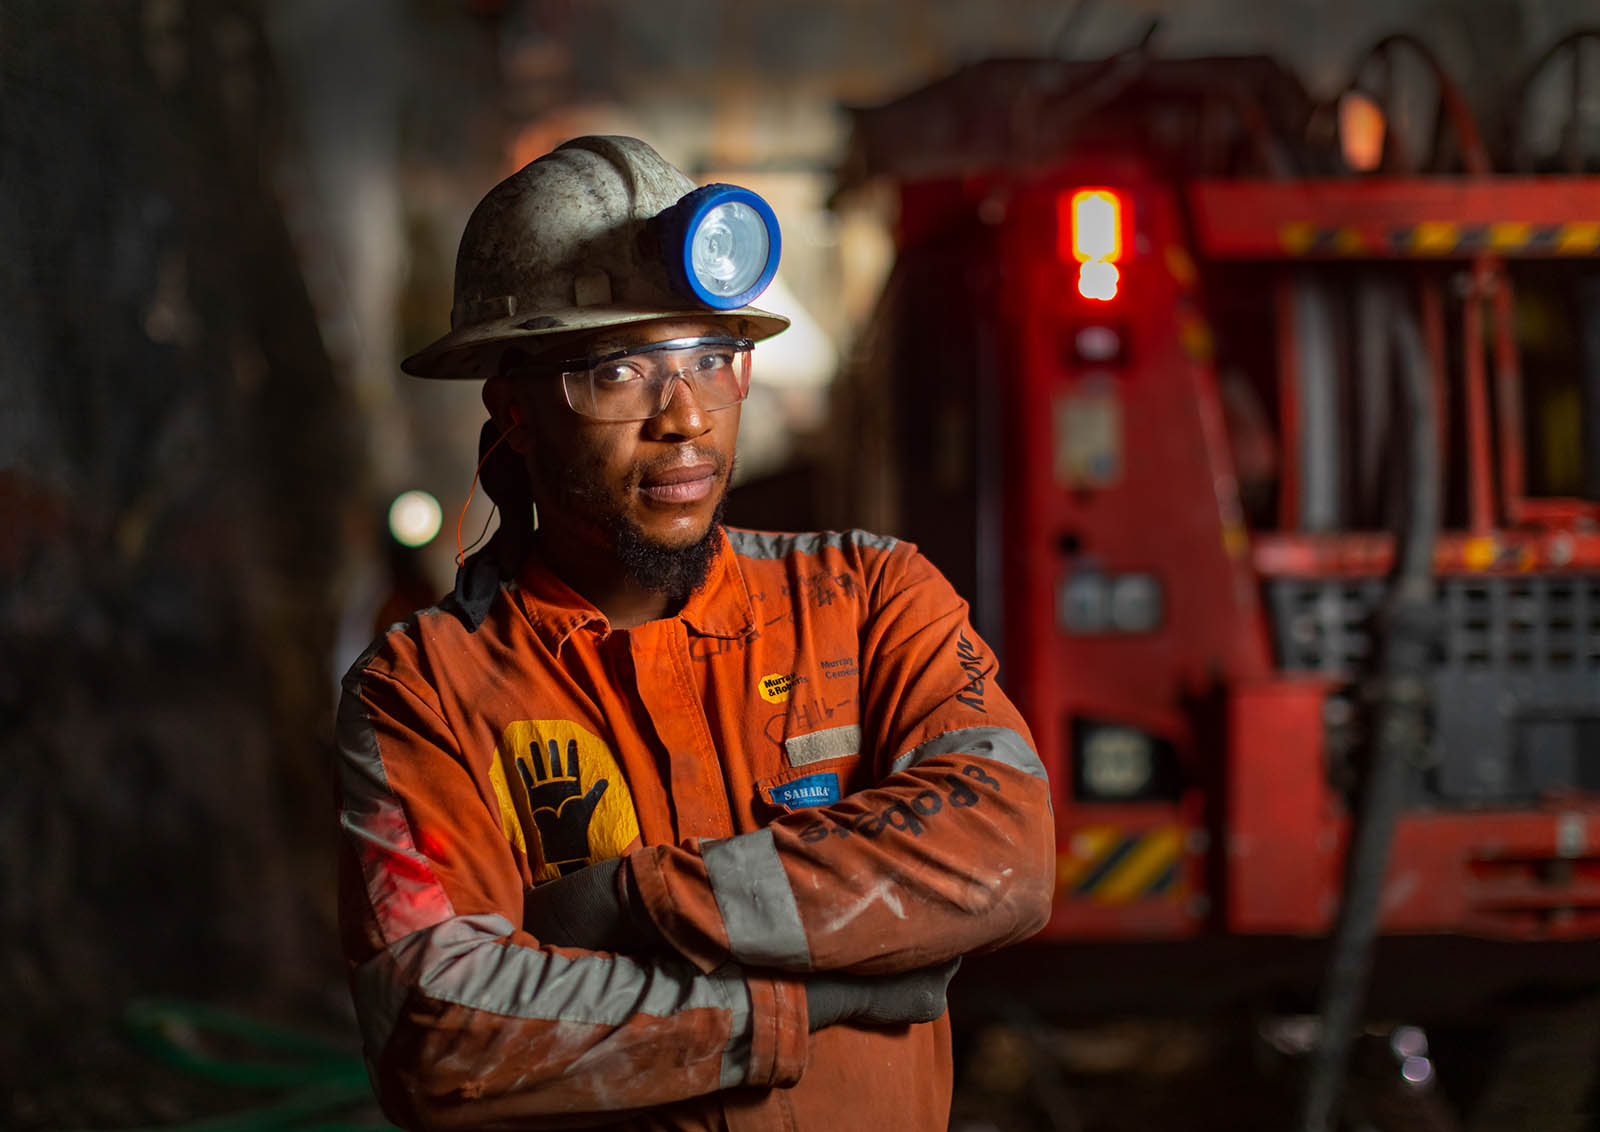 Platinum mine worker portrait by professional photographer Geoff Brown